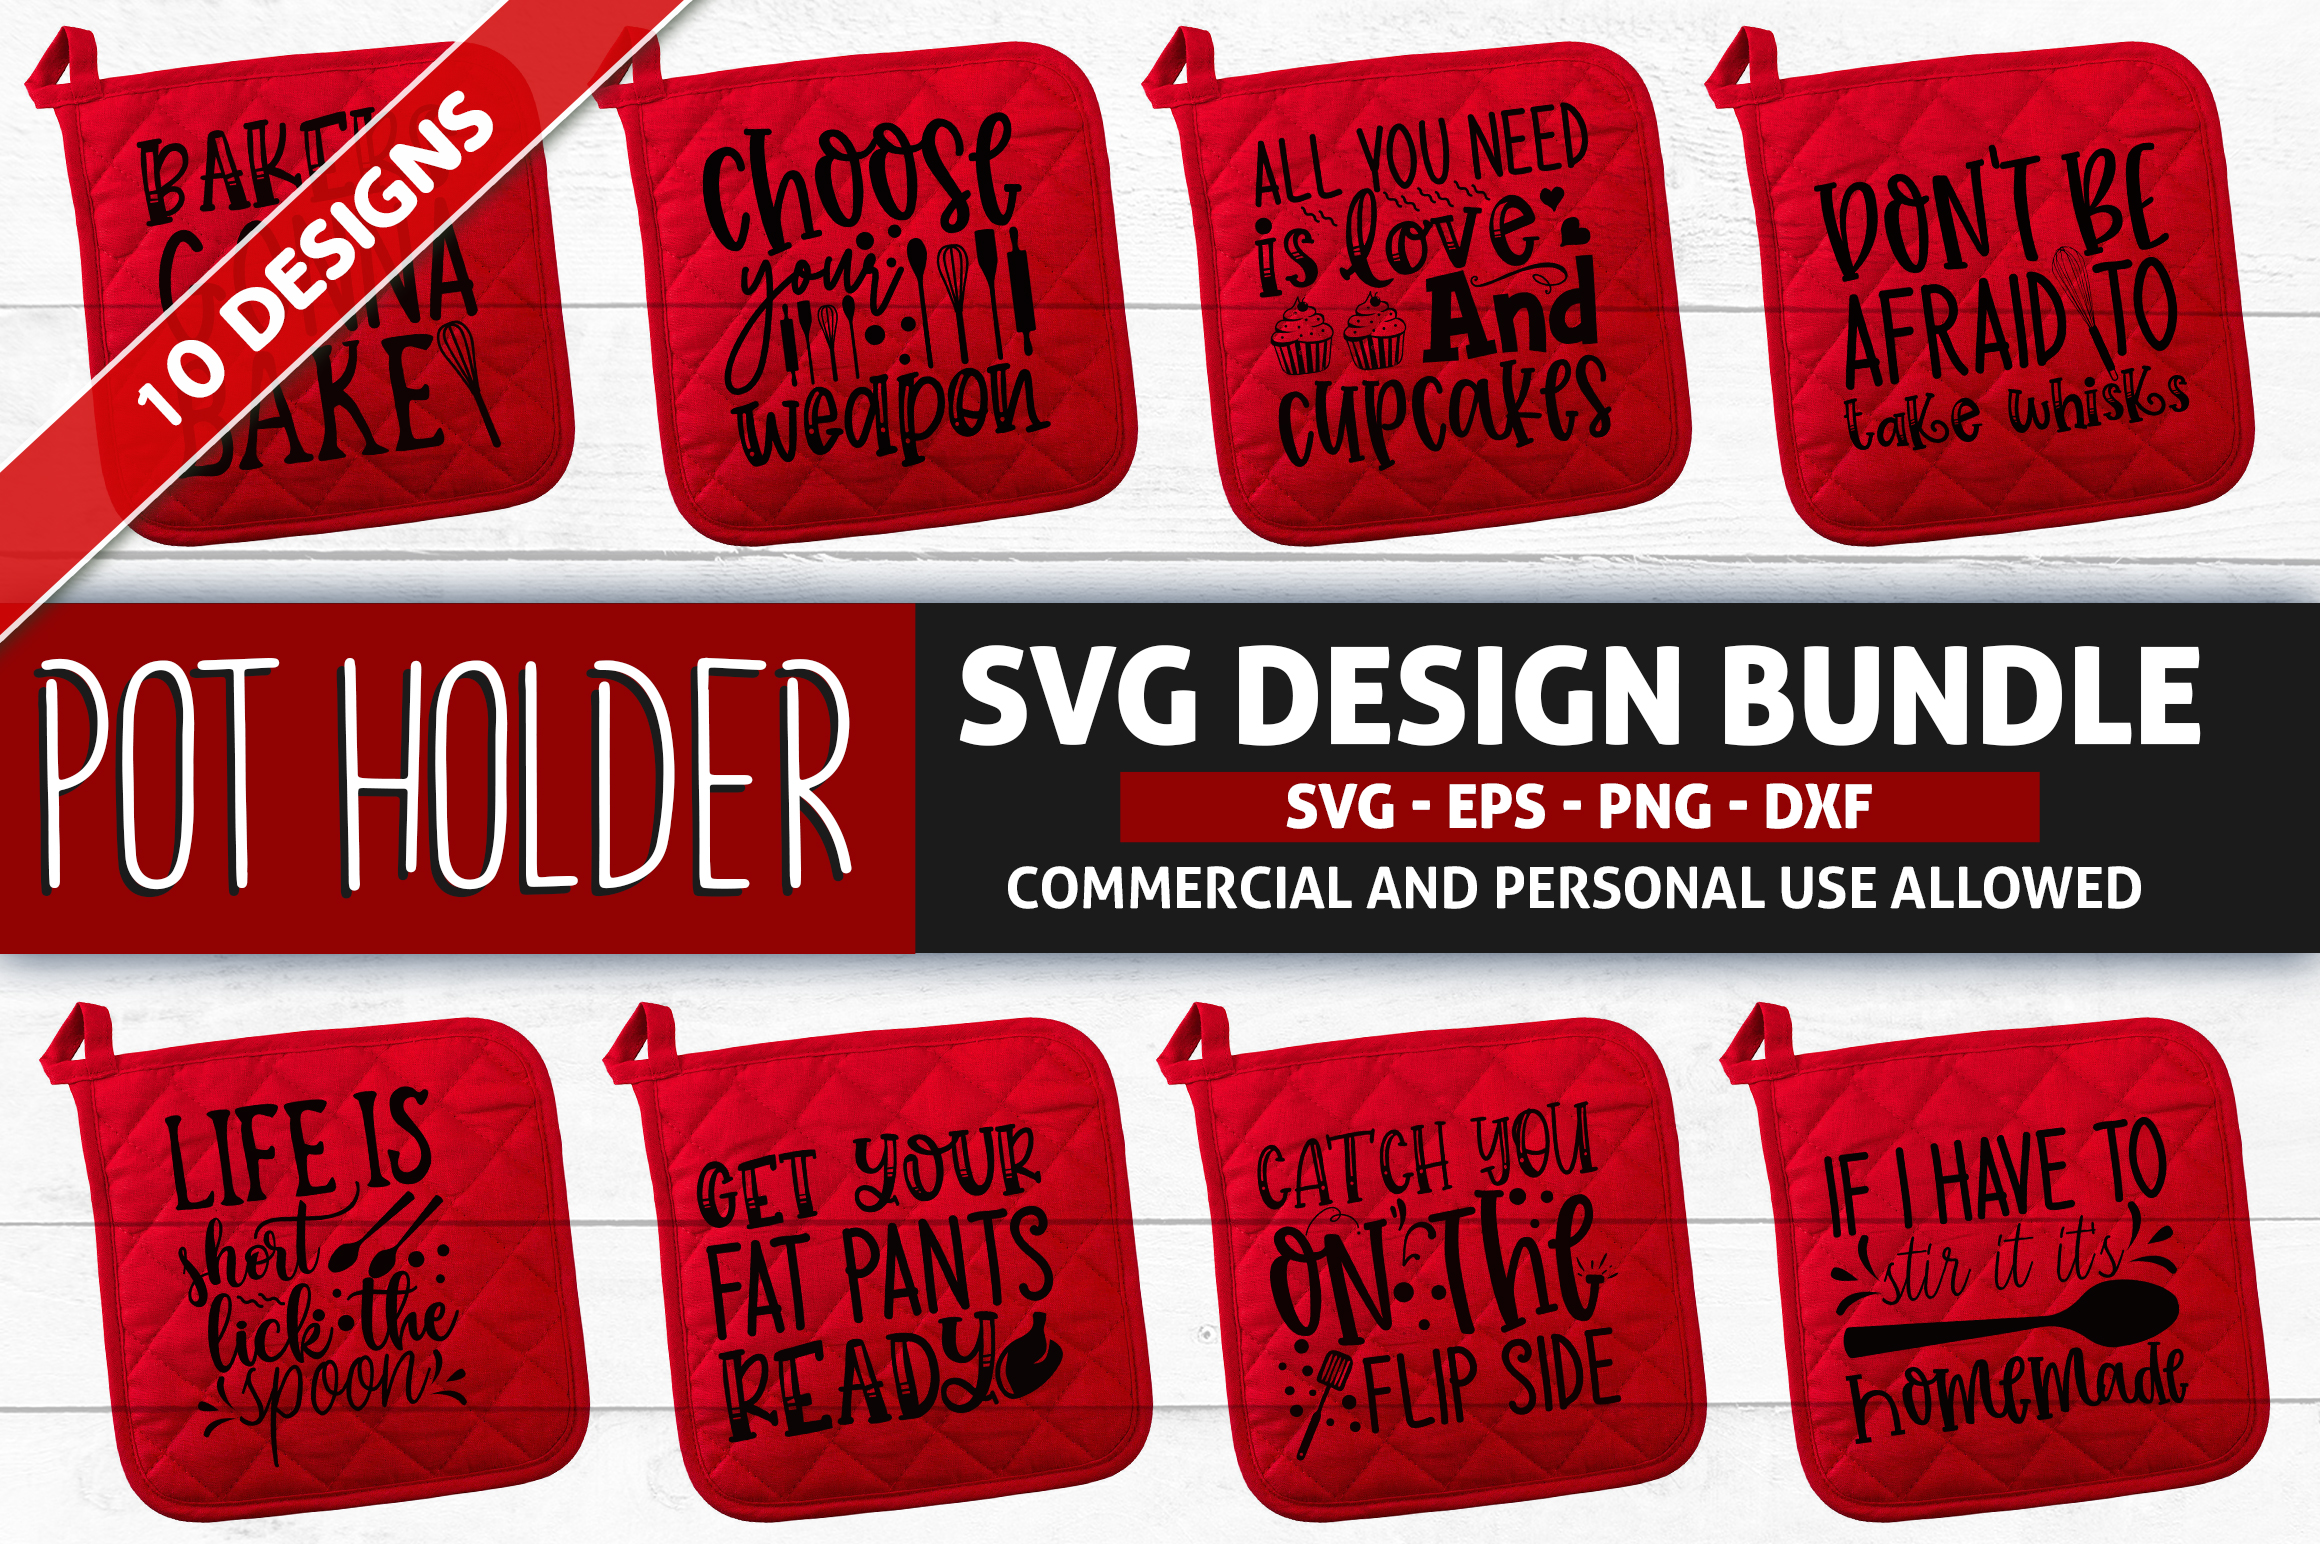 510 SVG DESIGN THE MIGHTY BUNDLE |32 DIFFERENT BUNDLES example image 25